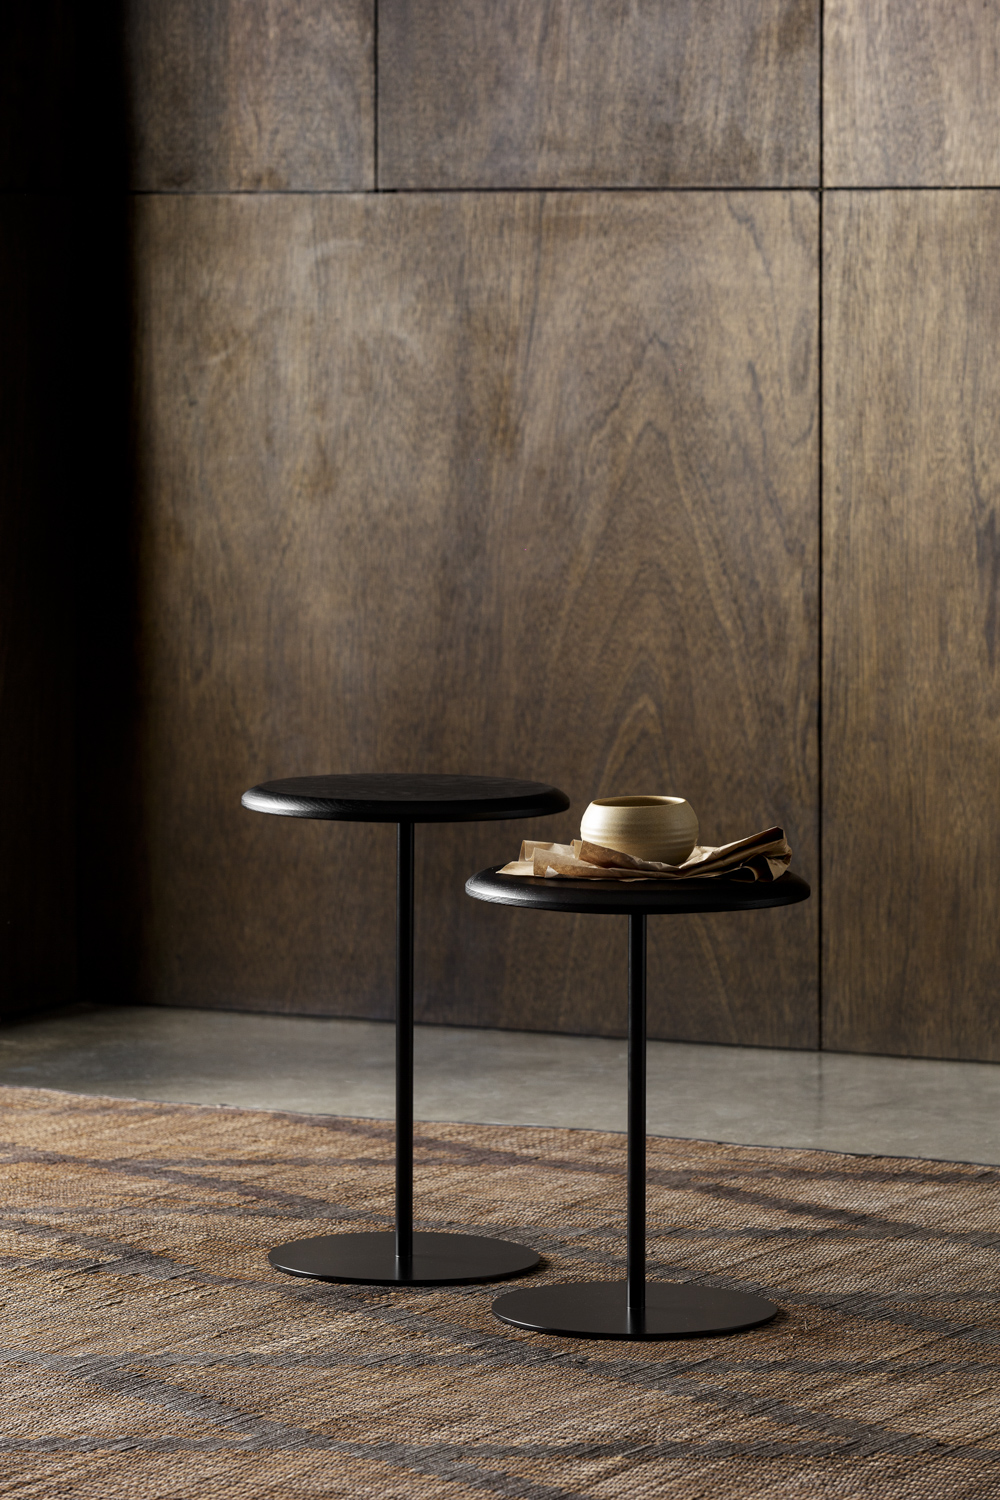 Gallery Of Poppy Side Table By Anaca Studio Local Australian Furniture Design Collingwood, Melbourne Image 15